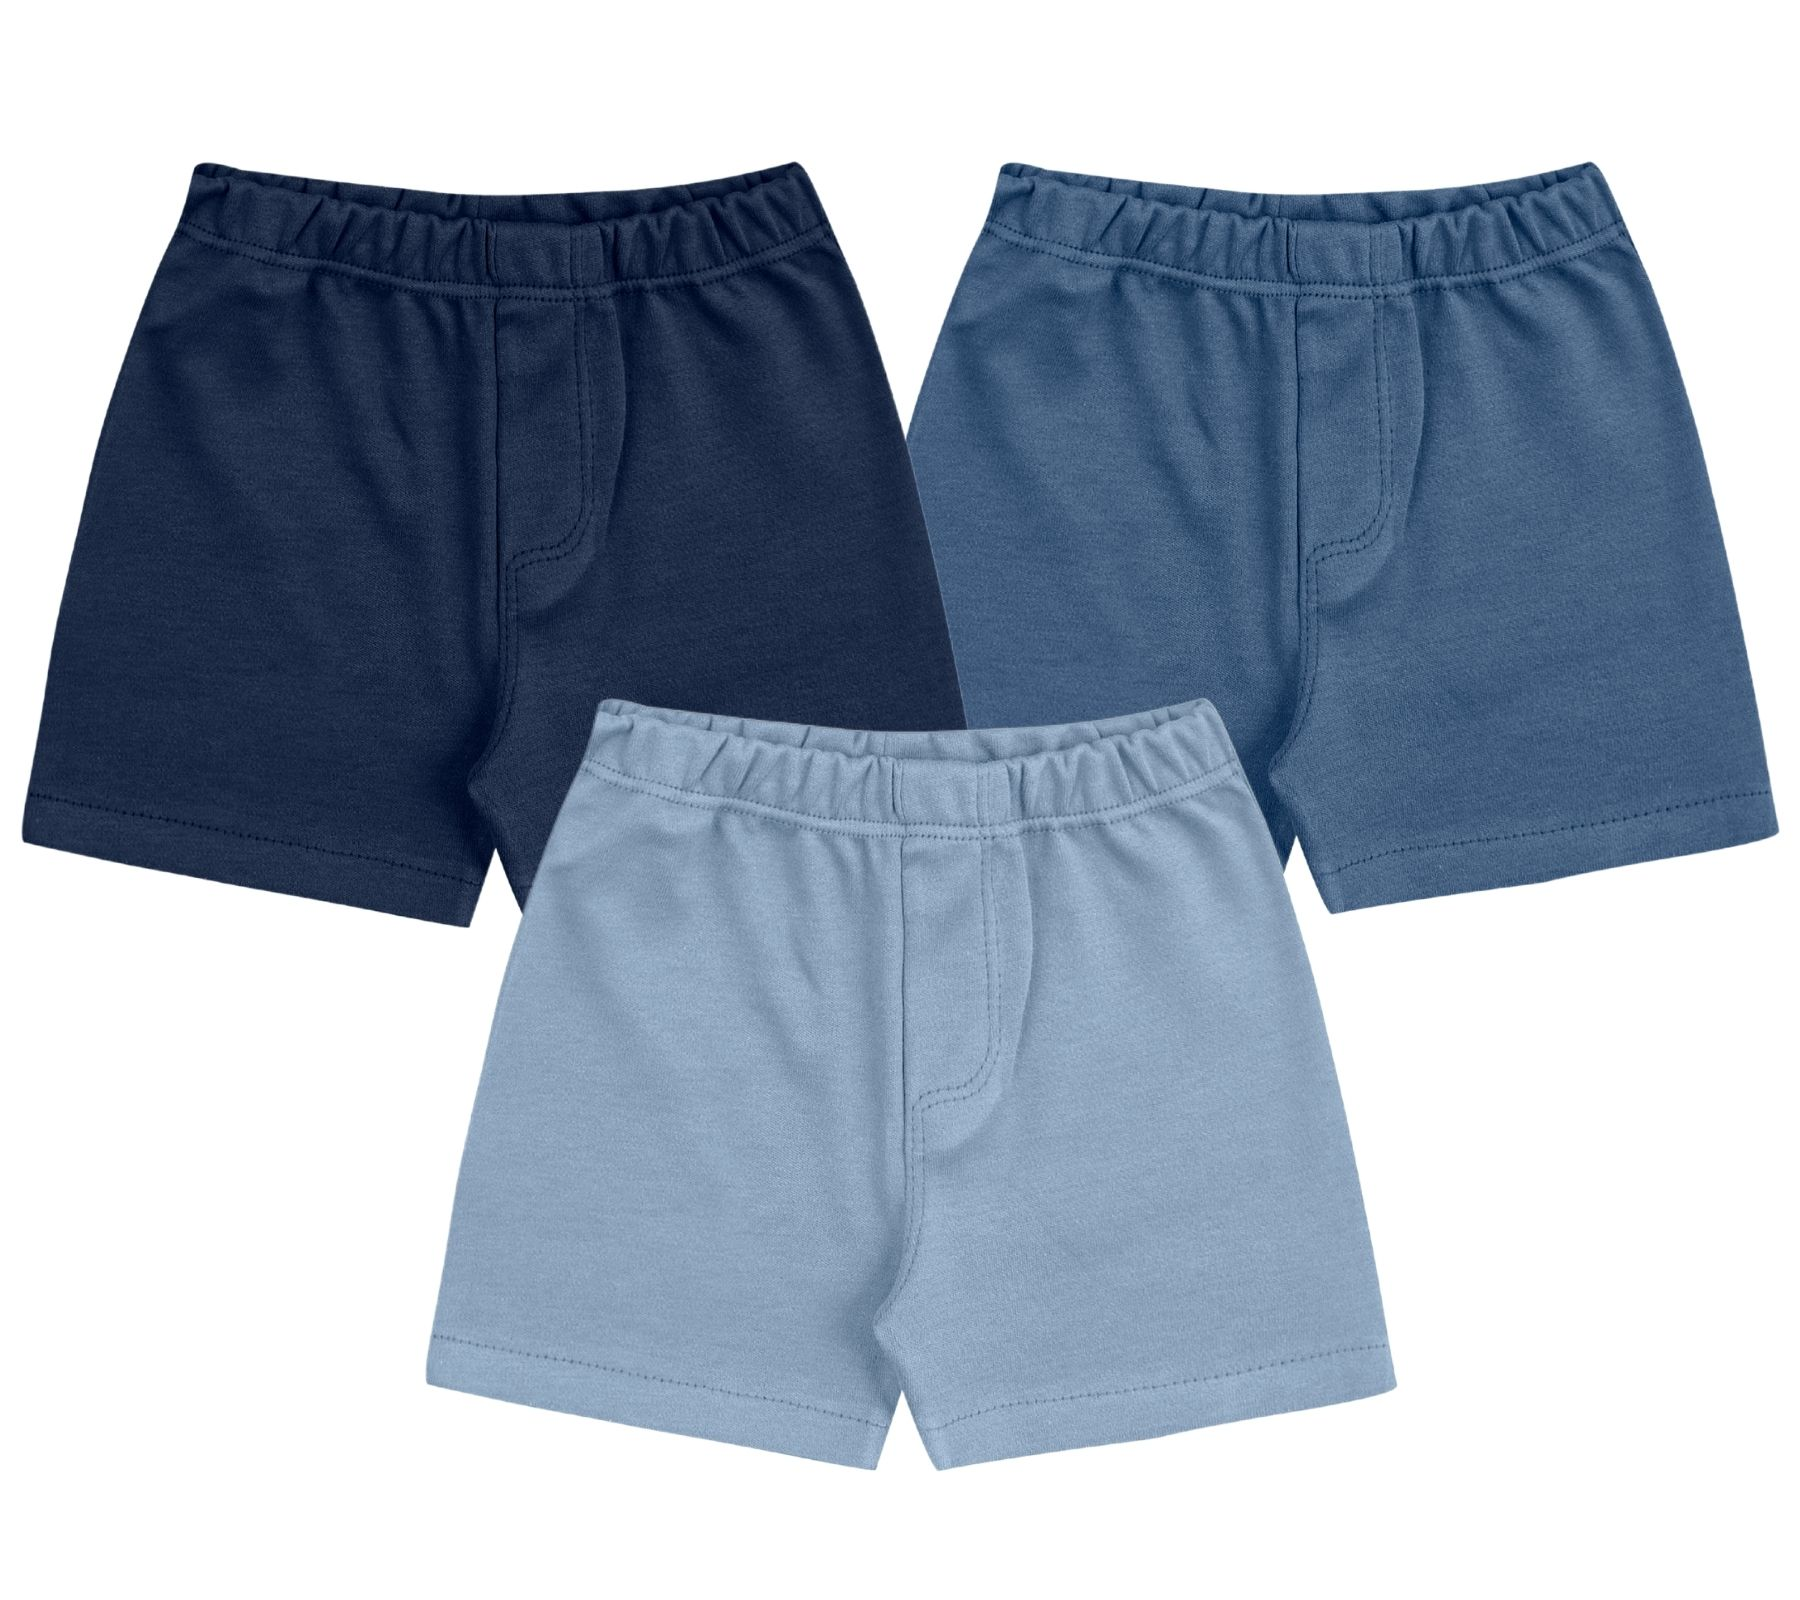 Kit Shorts Kiko Baby Liso Azul